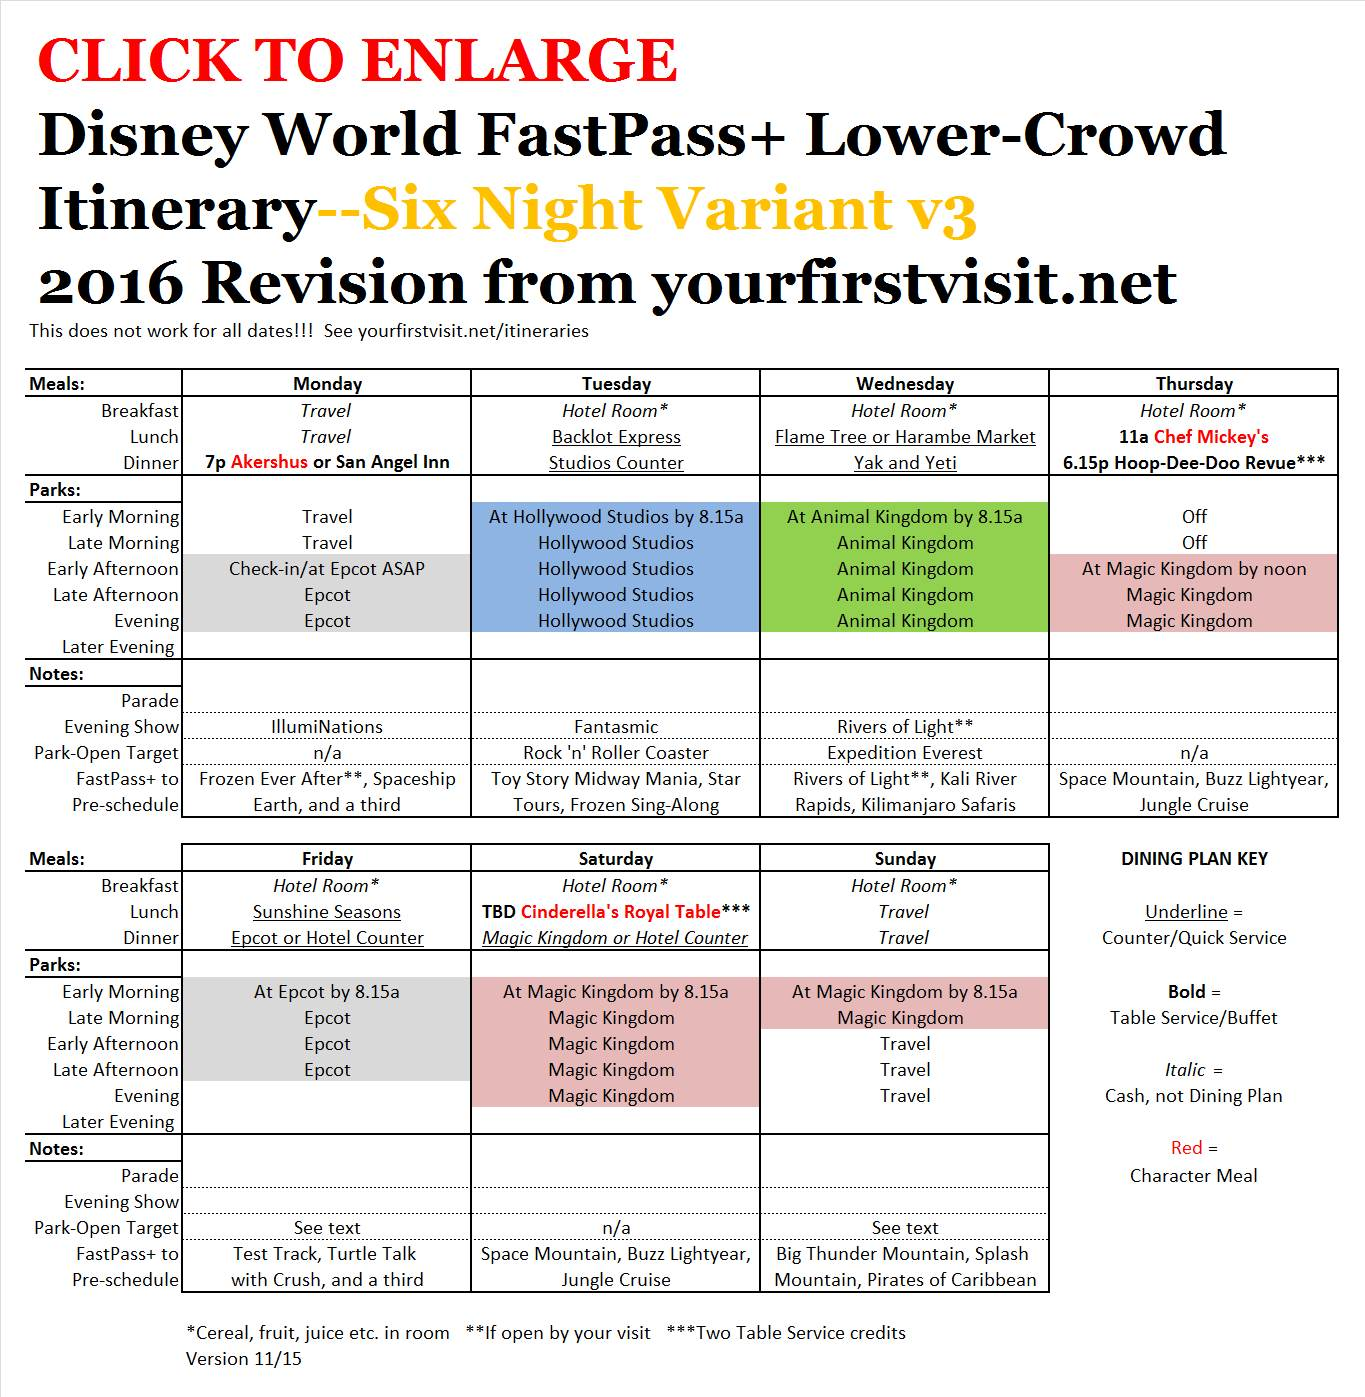 to-do list for disney world fastpass+ lower crowd itinerary, 6 night